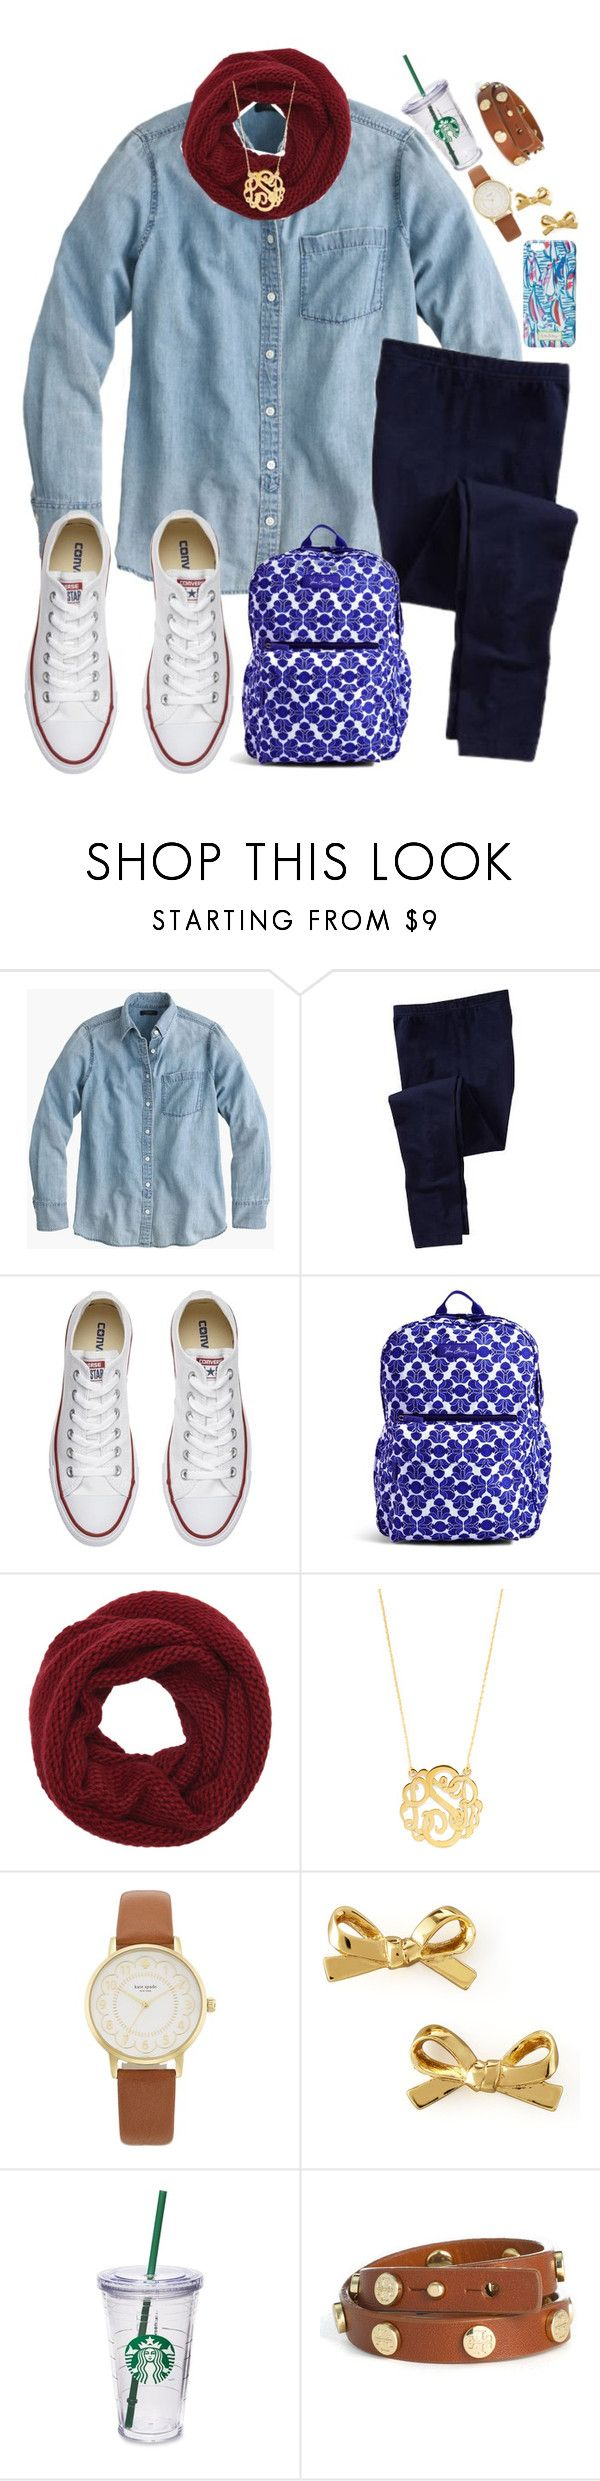 """""""Contest set 1"""" by lbkatie17 ❤ liked on Polyvore featuring J.Crew, Old Navy, Converse, Vera Bradley, Wyatt, Lilly Pulitzer, BaubleBar, Kate Spade, Starbucks and Tory Burch"""